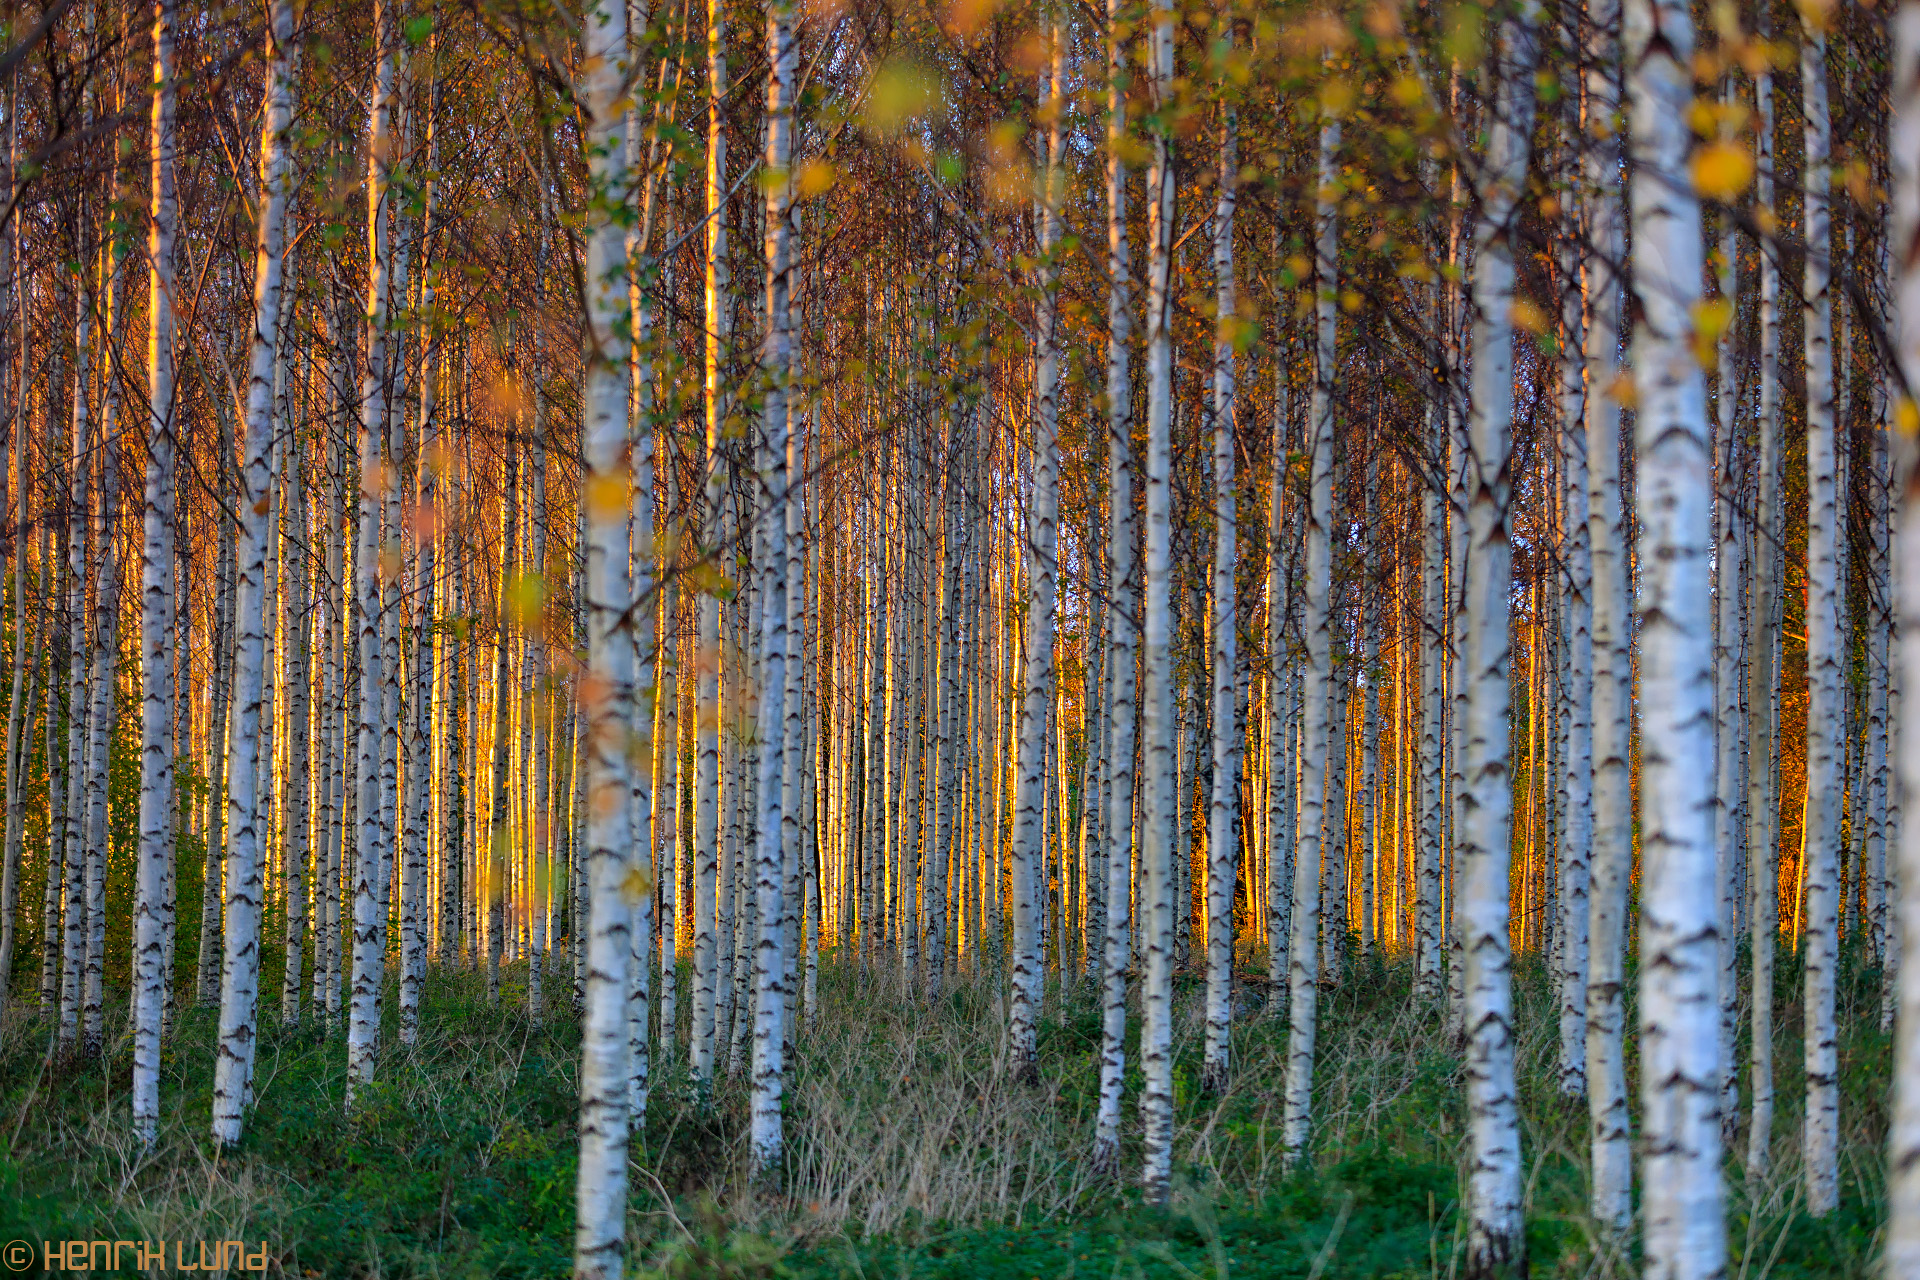 Birch forest at autumn sunset. Kimonkylä, Lapinjärvi, Finland. September 2016.